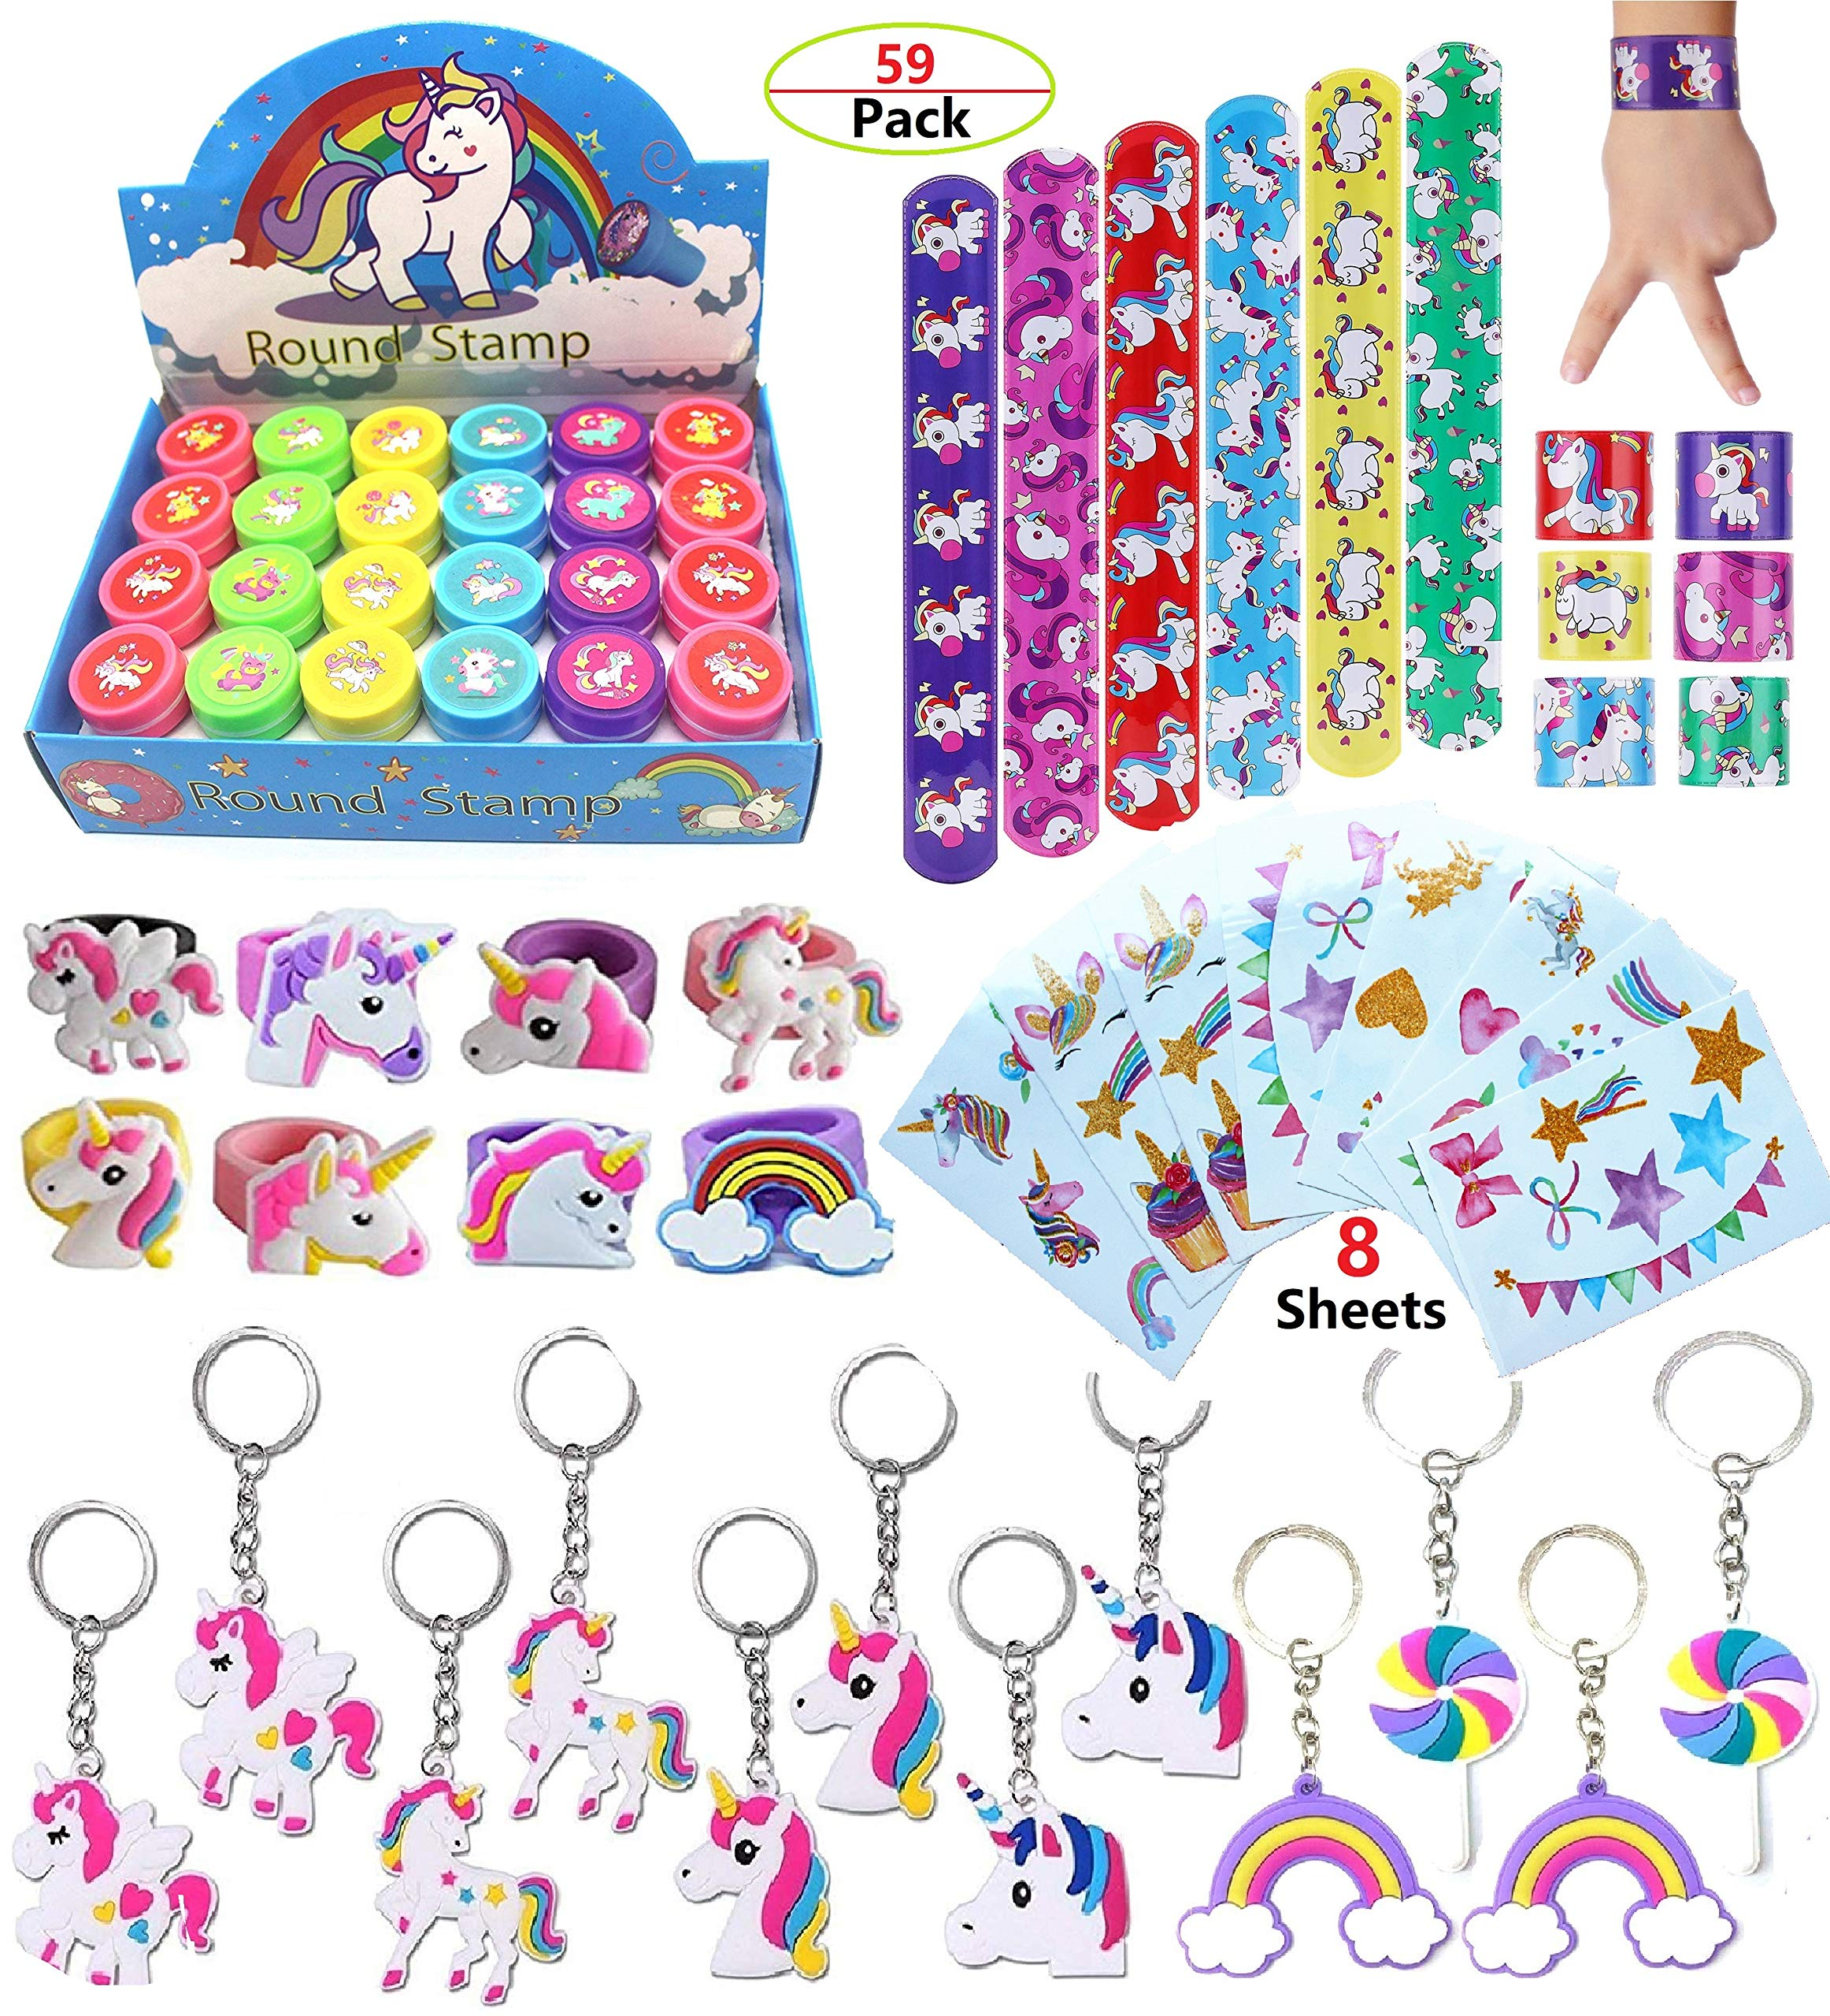 Unicorn Theme Party Favor For Kids-96Pcs Unicorn Tatoo-24Pcs Unicorn Stamper-27 Pcs Unicorn Rings Necklace Keychain… 3